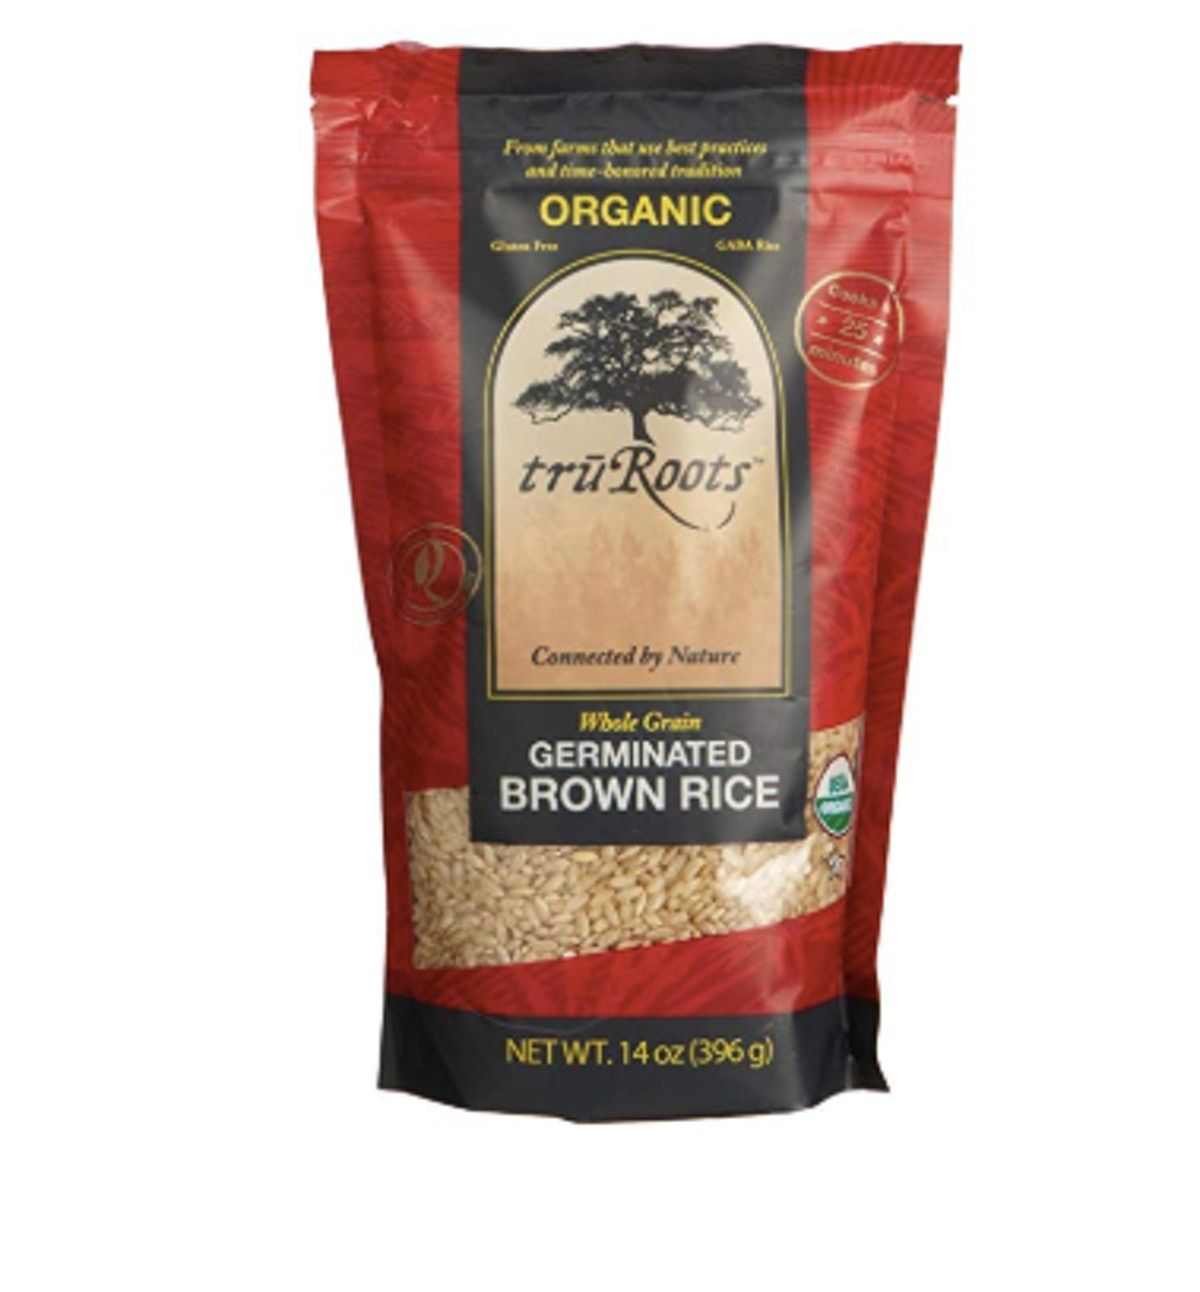 truRoots Organic Germinated Brown Rice